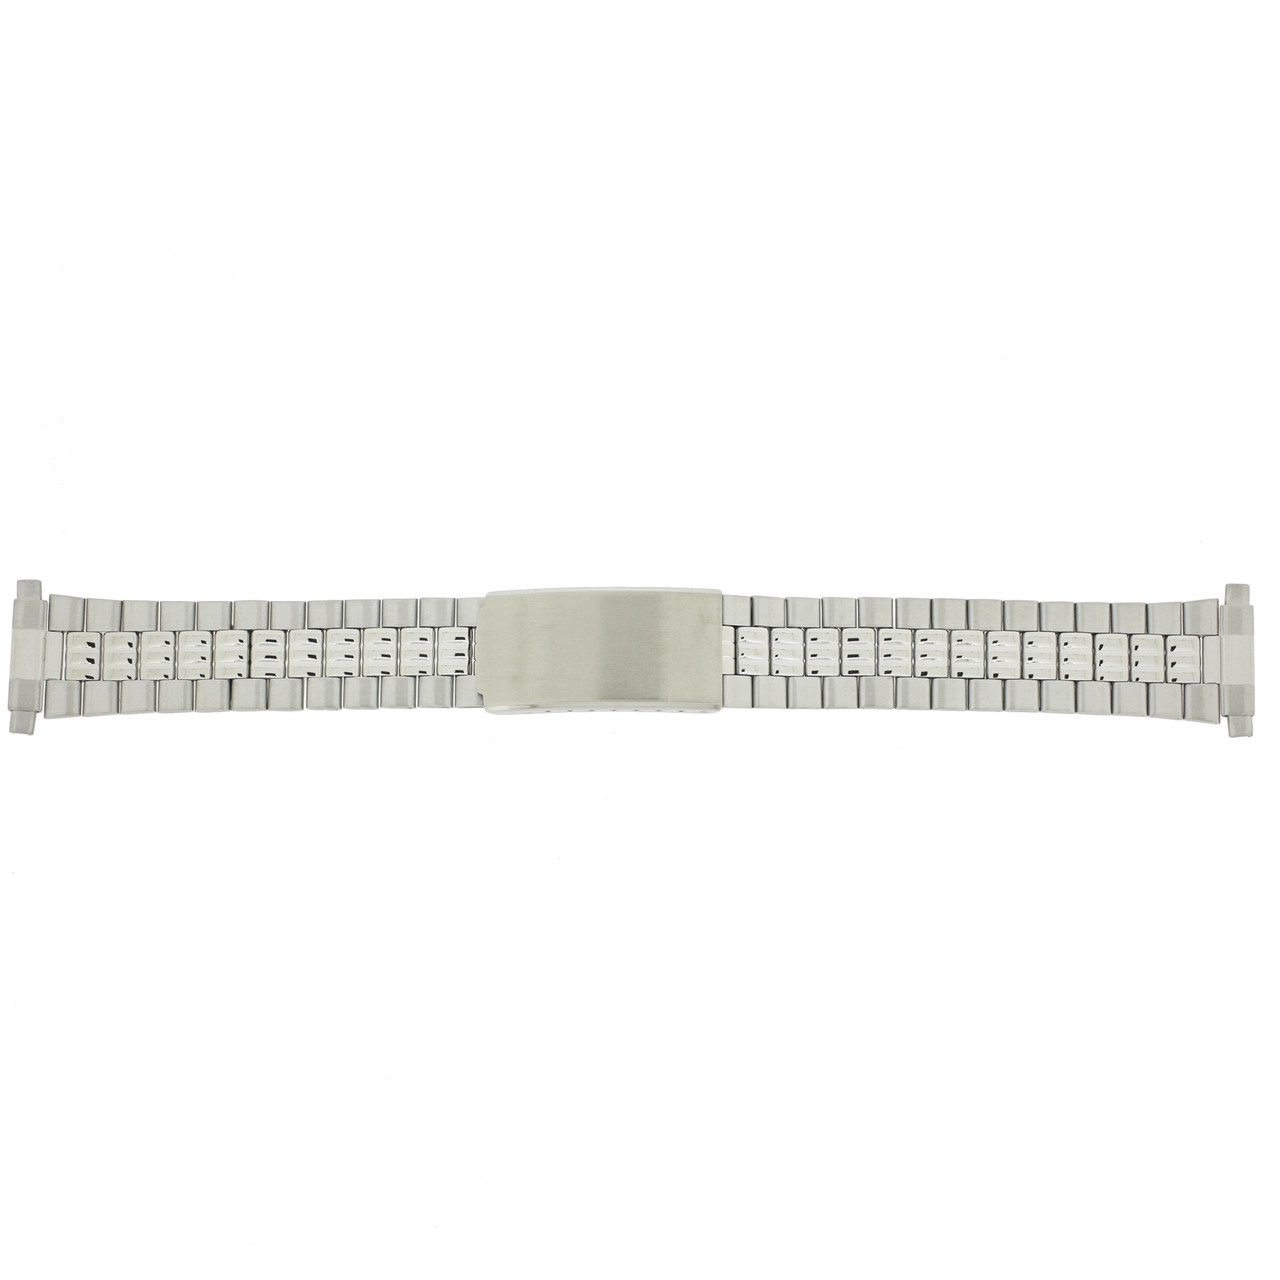 Watch Band Link Metal Stainless Steel Spring Ends 17mm-22mm - Main